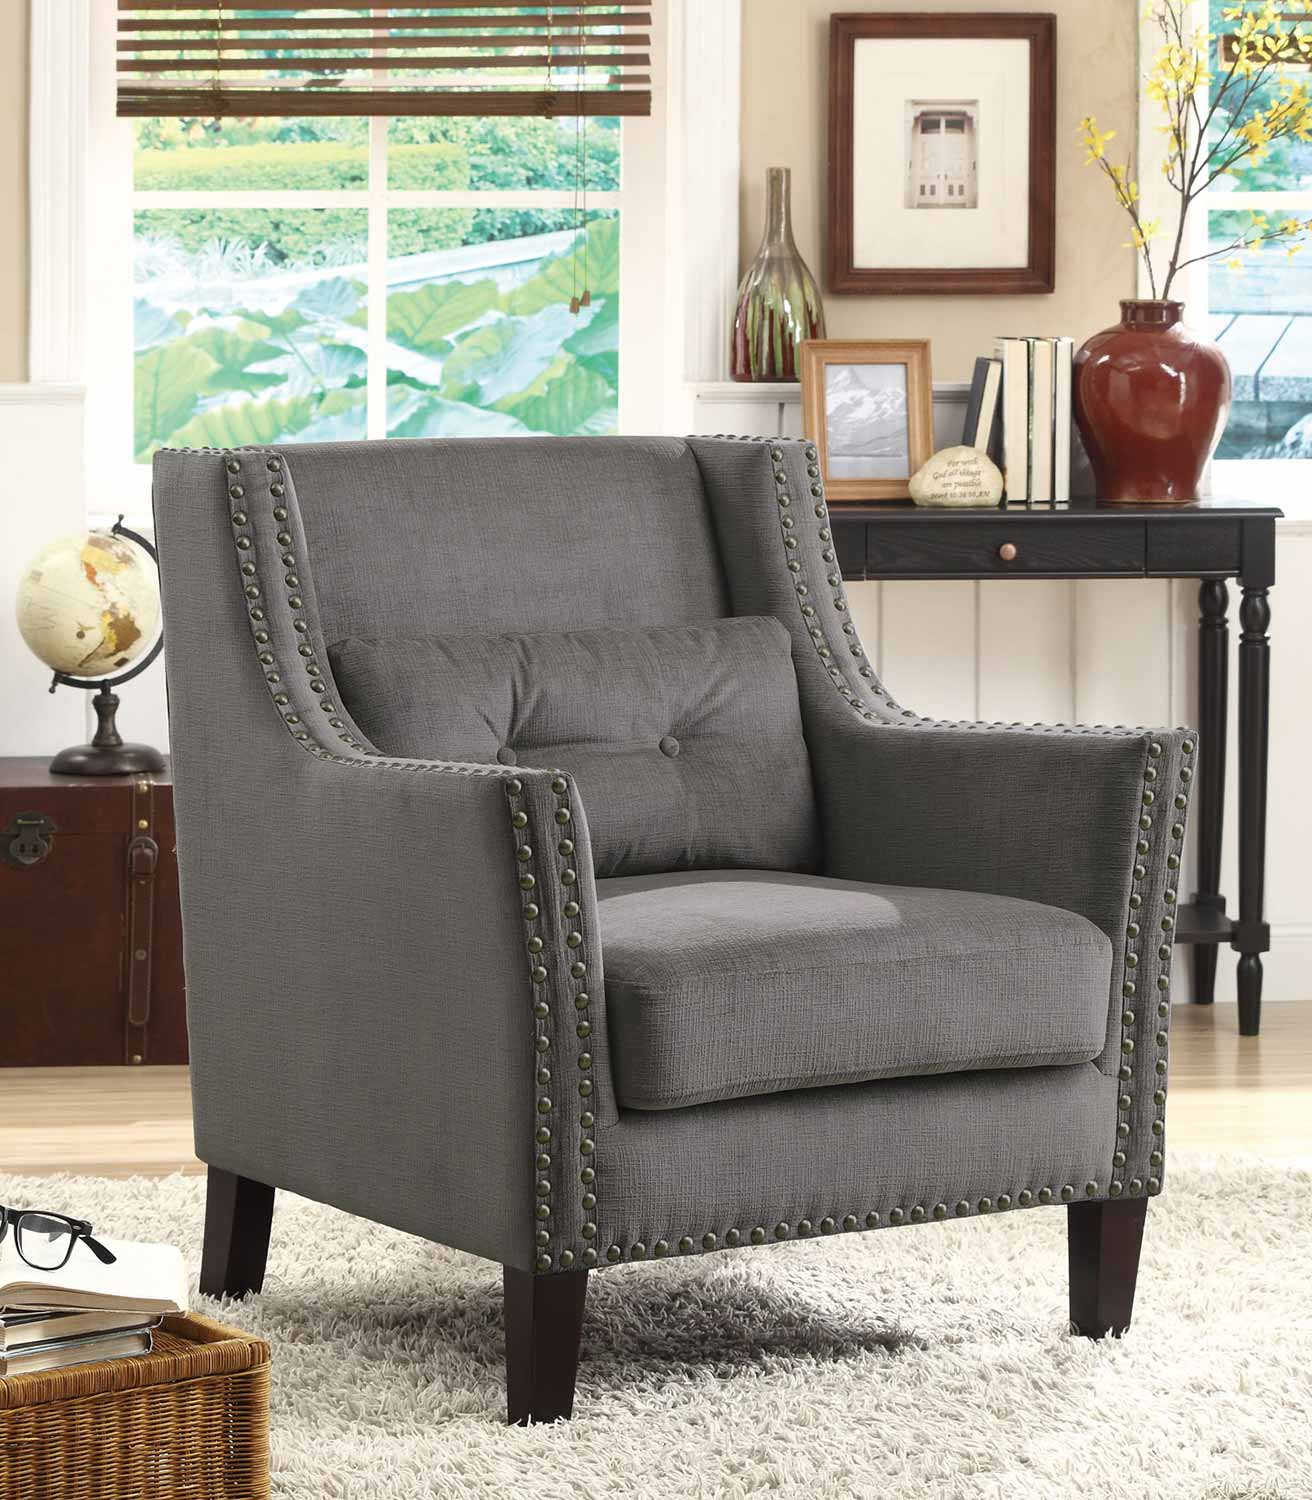 Coaster 902170 Accent Chair - Grey